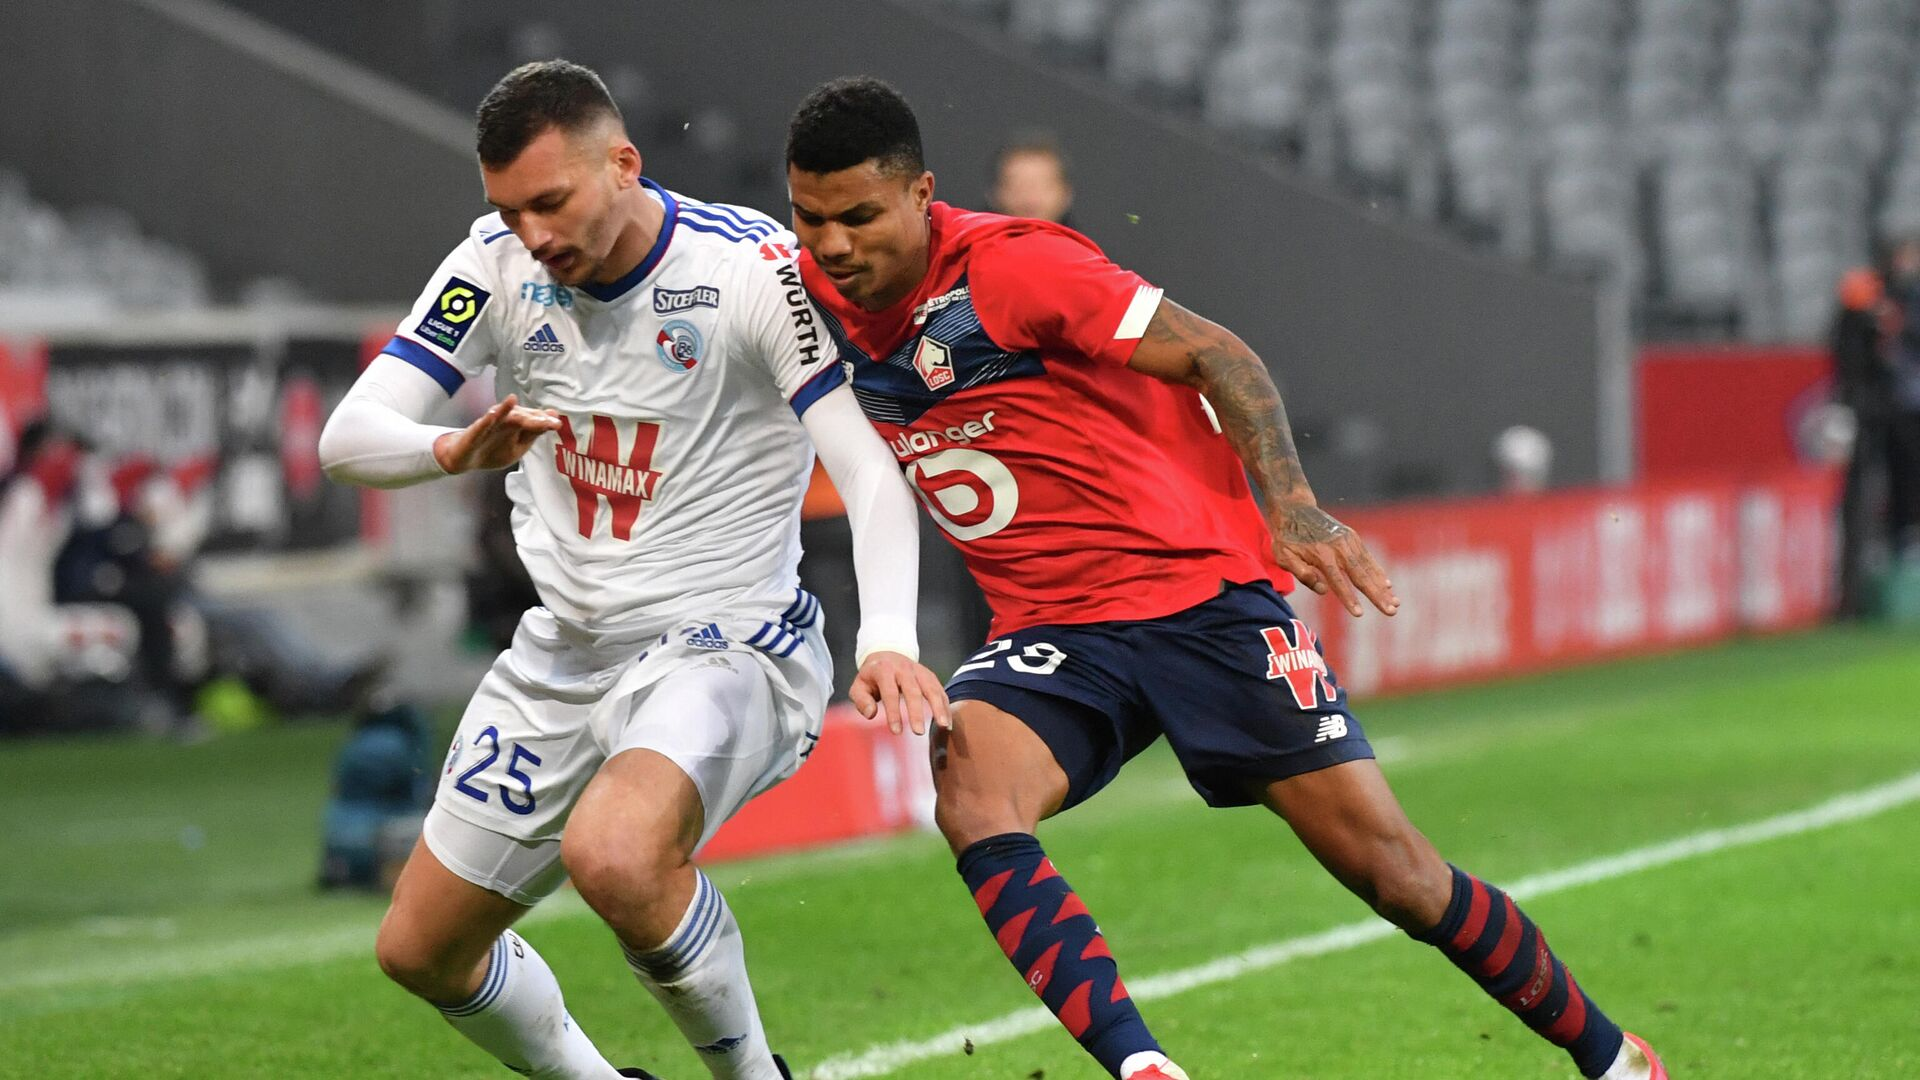 Lille's Mozambican defender Reinildo Mandava (R) fights for the ball with Strasbourg's French forward Ludovic Ajorque during the French L1 football match between Lille LOSC and Racing Club Strasbourg Alsace at the Pierre-Mauroy stadium in Villeneuve-d'Ascq, near Lille, northern France on February 28, 2021. (Photo by DENIS CHARLET / AFP) - РИА Новости, 1920, 28.02.2021